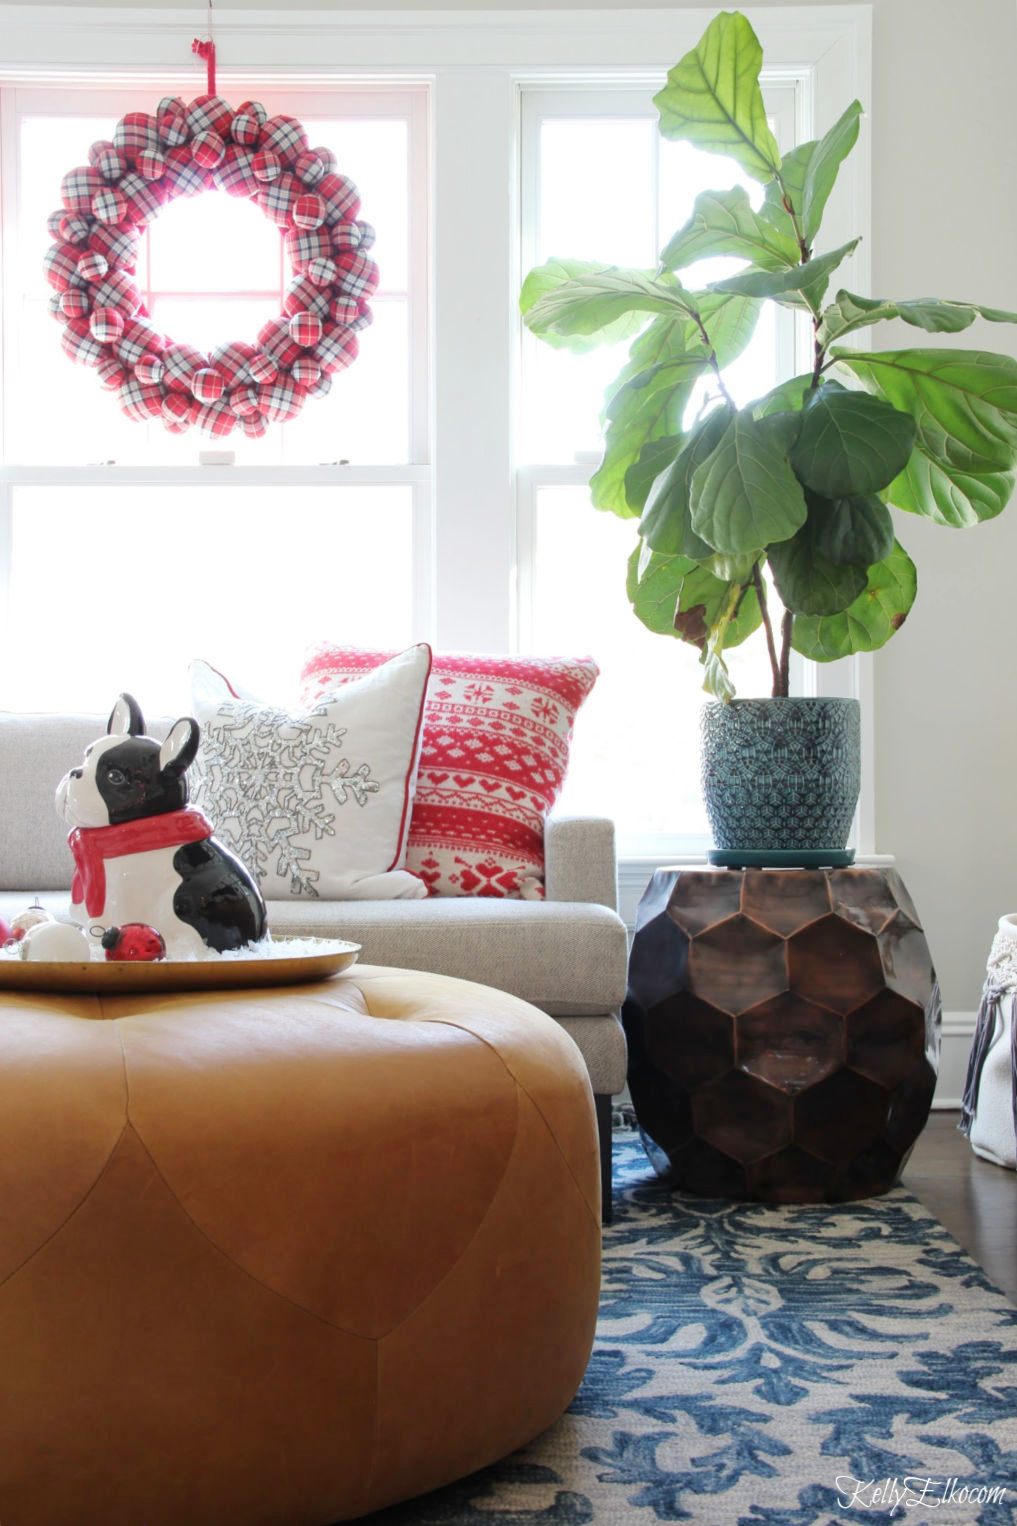 Creative Christmas Home Tour - love this colorful family room with huge red plaid wreath and fiddle leaf fig kellyelko.com #christmas #christmasdecor #christmasdecorating #christmashome #christmastour #diychristmas #christmasideas #christmasmantel #christmastree #christmasornaments #vintagechristmas #farmhousechristmas #colorfulchristmas #creativechristmas #kellyelko #fiddleleaffig #houseplants #plants #plantlady